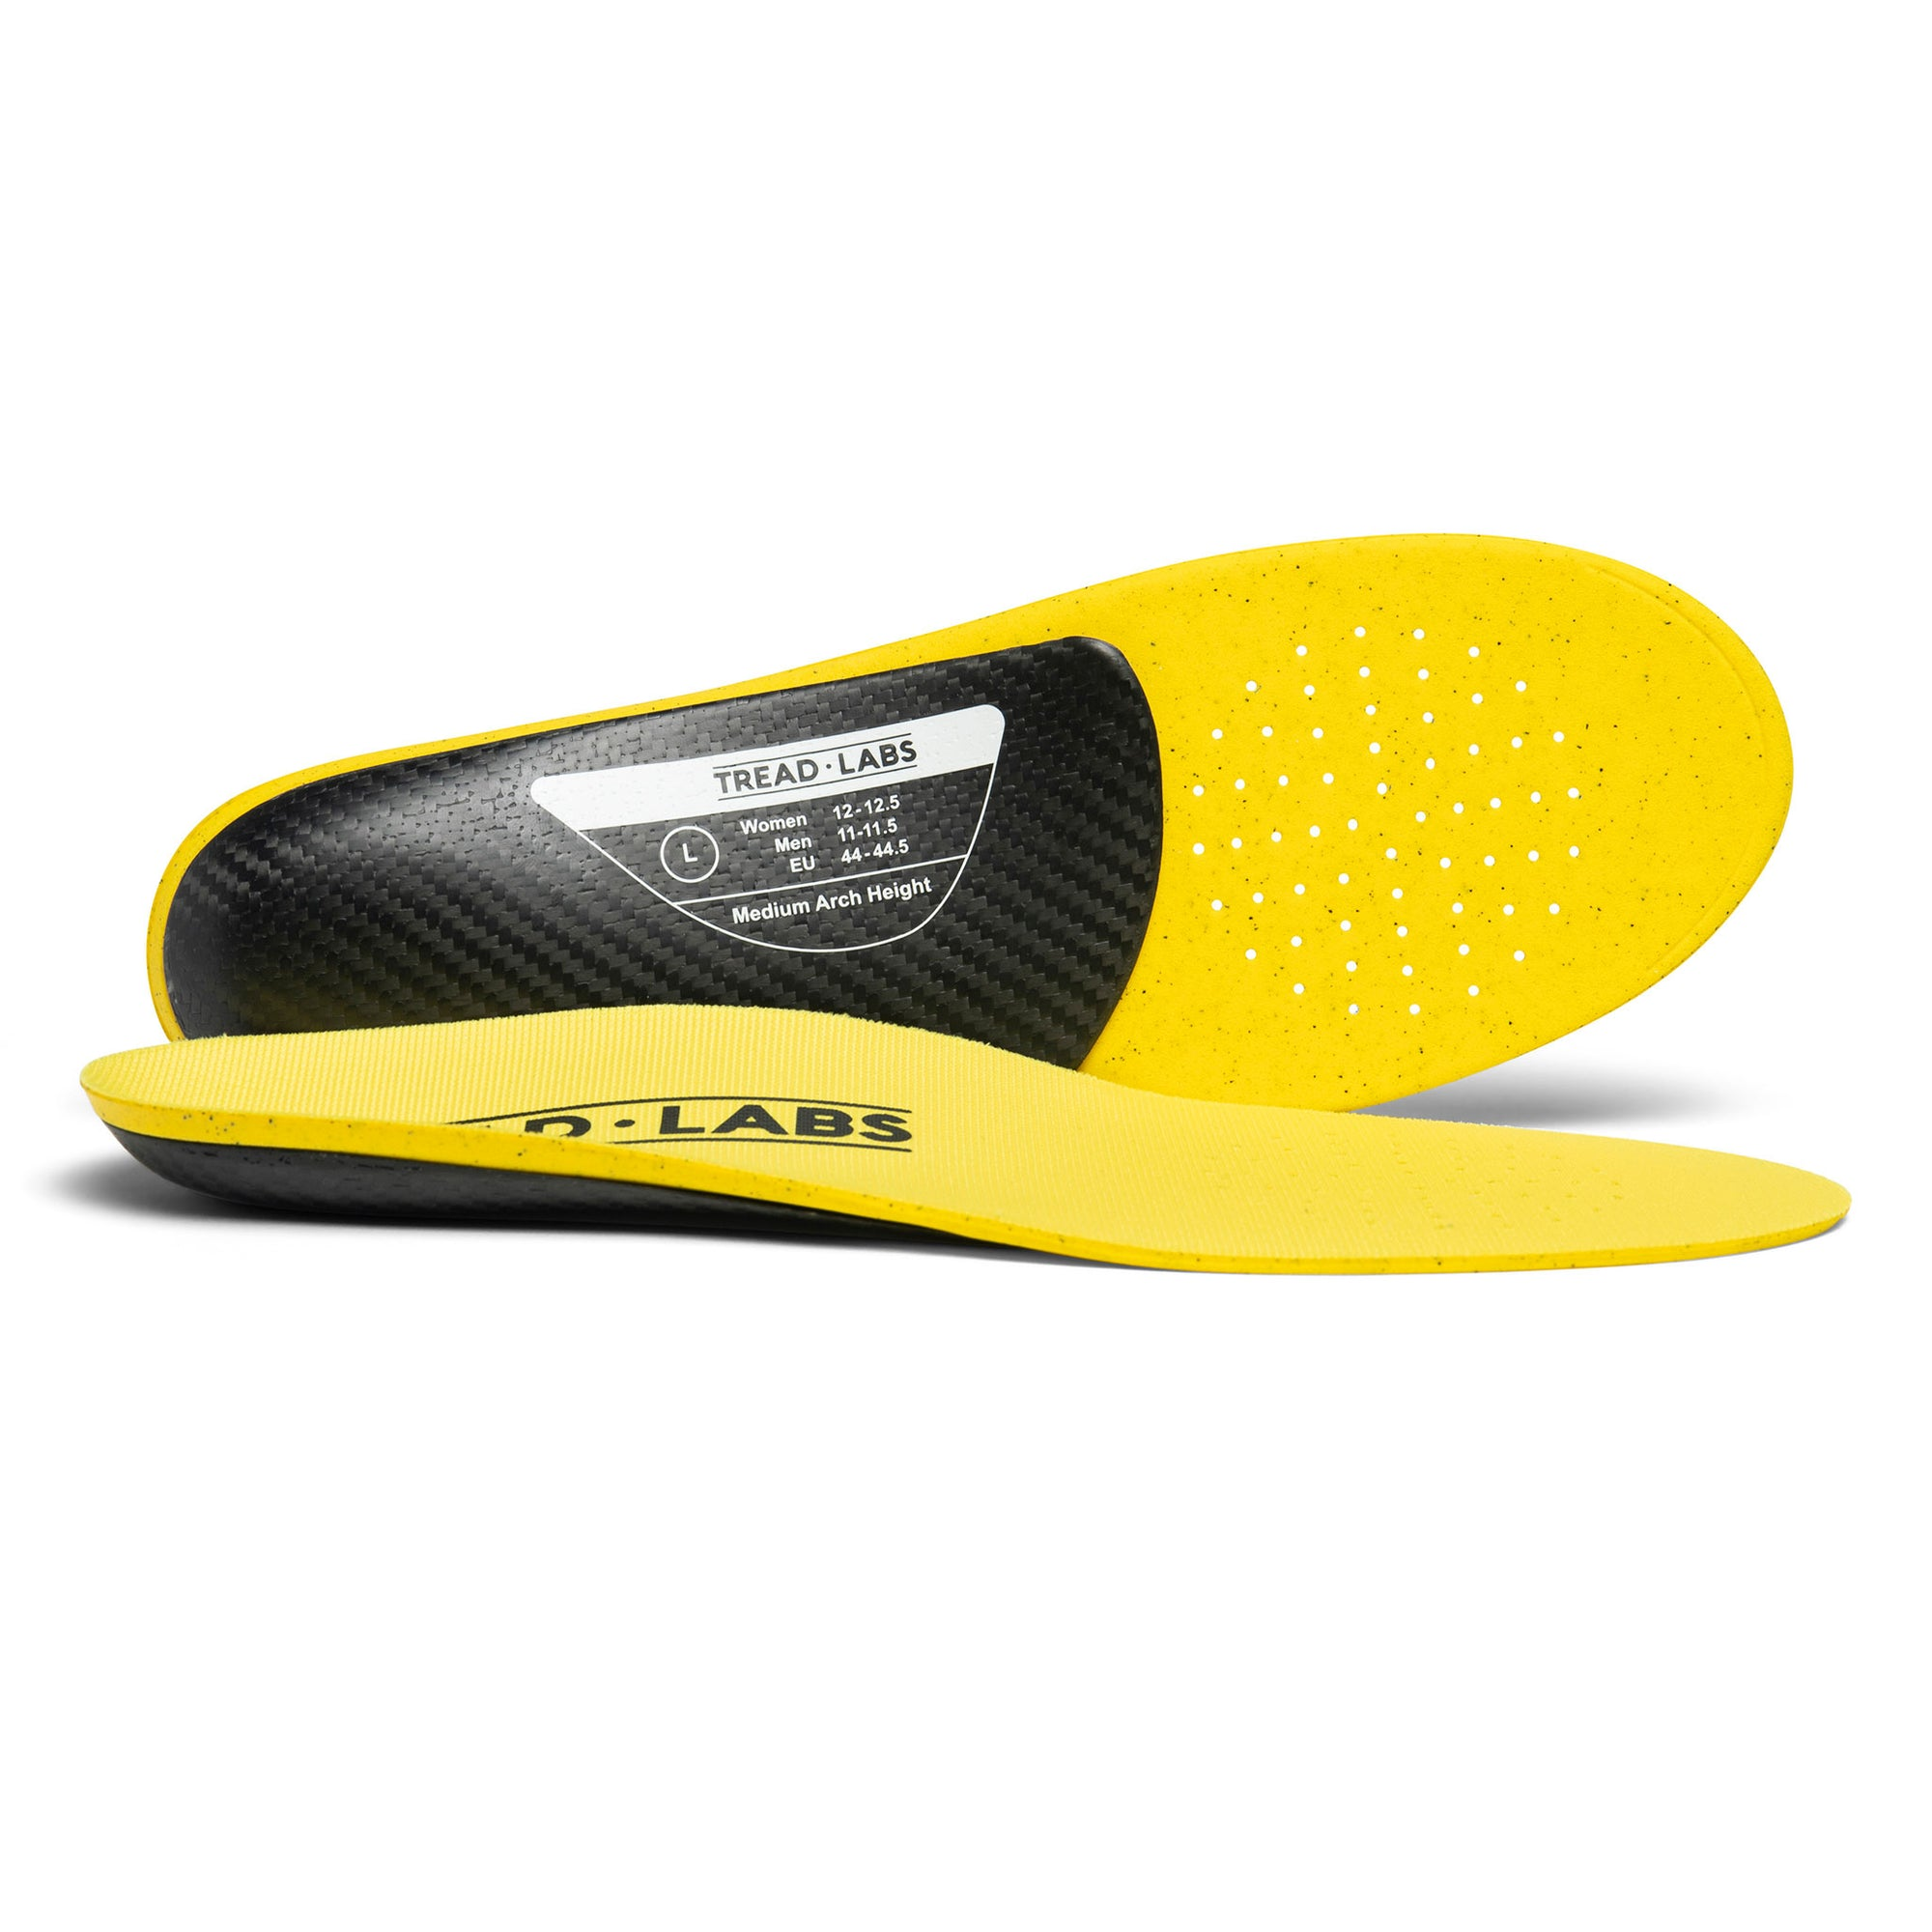 Dash Thin Carbon Fiber Performance Insole From Tread Labs